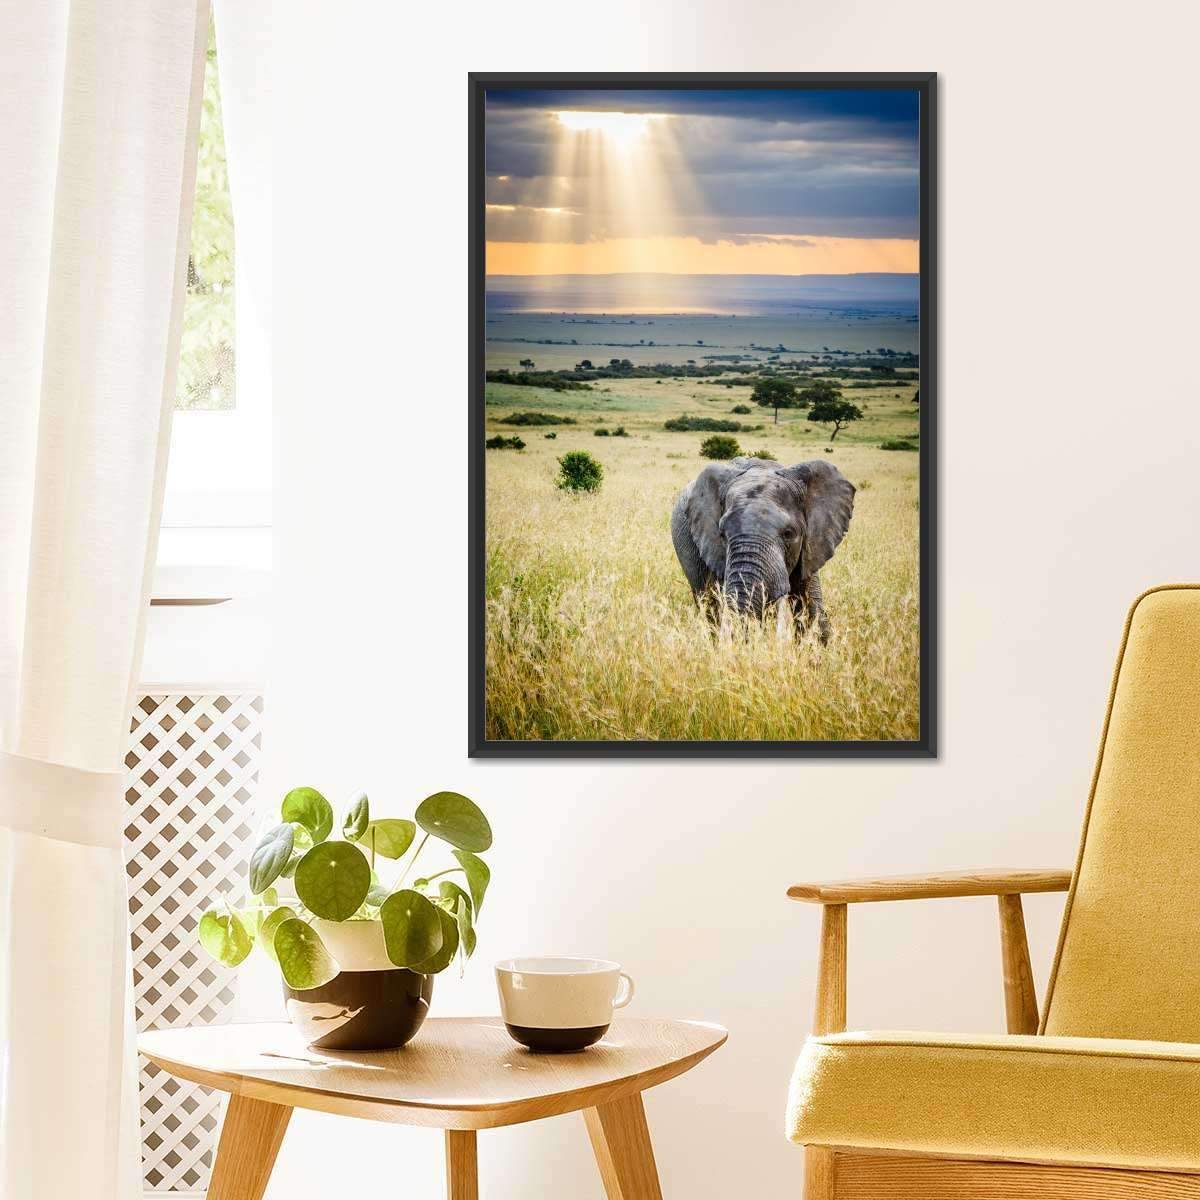 Sunrays On Savanna Fields Wall Art is a powerful addition to your decor. Decorate your any room in your home with this stunning elephant canvas print, that is a blend of power and strength.